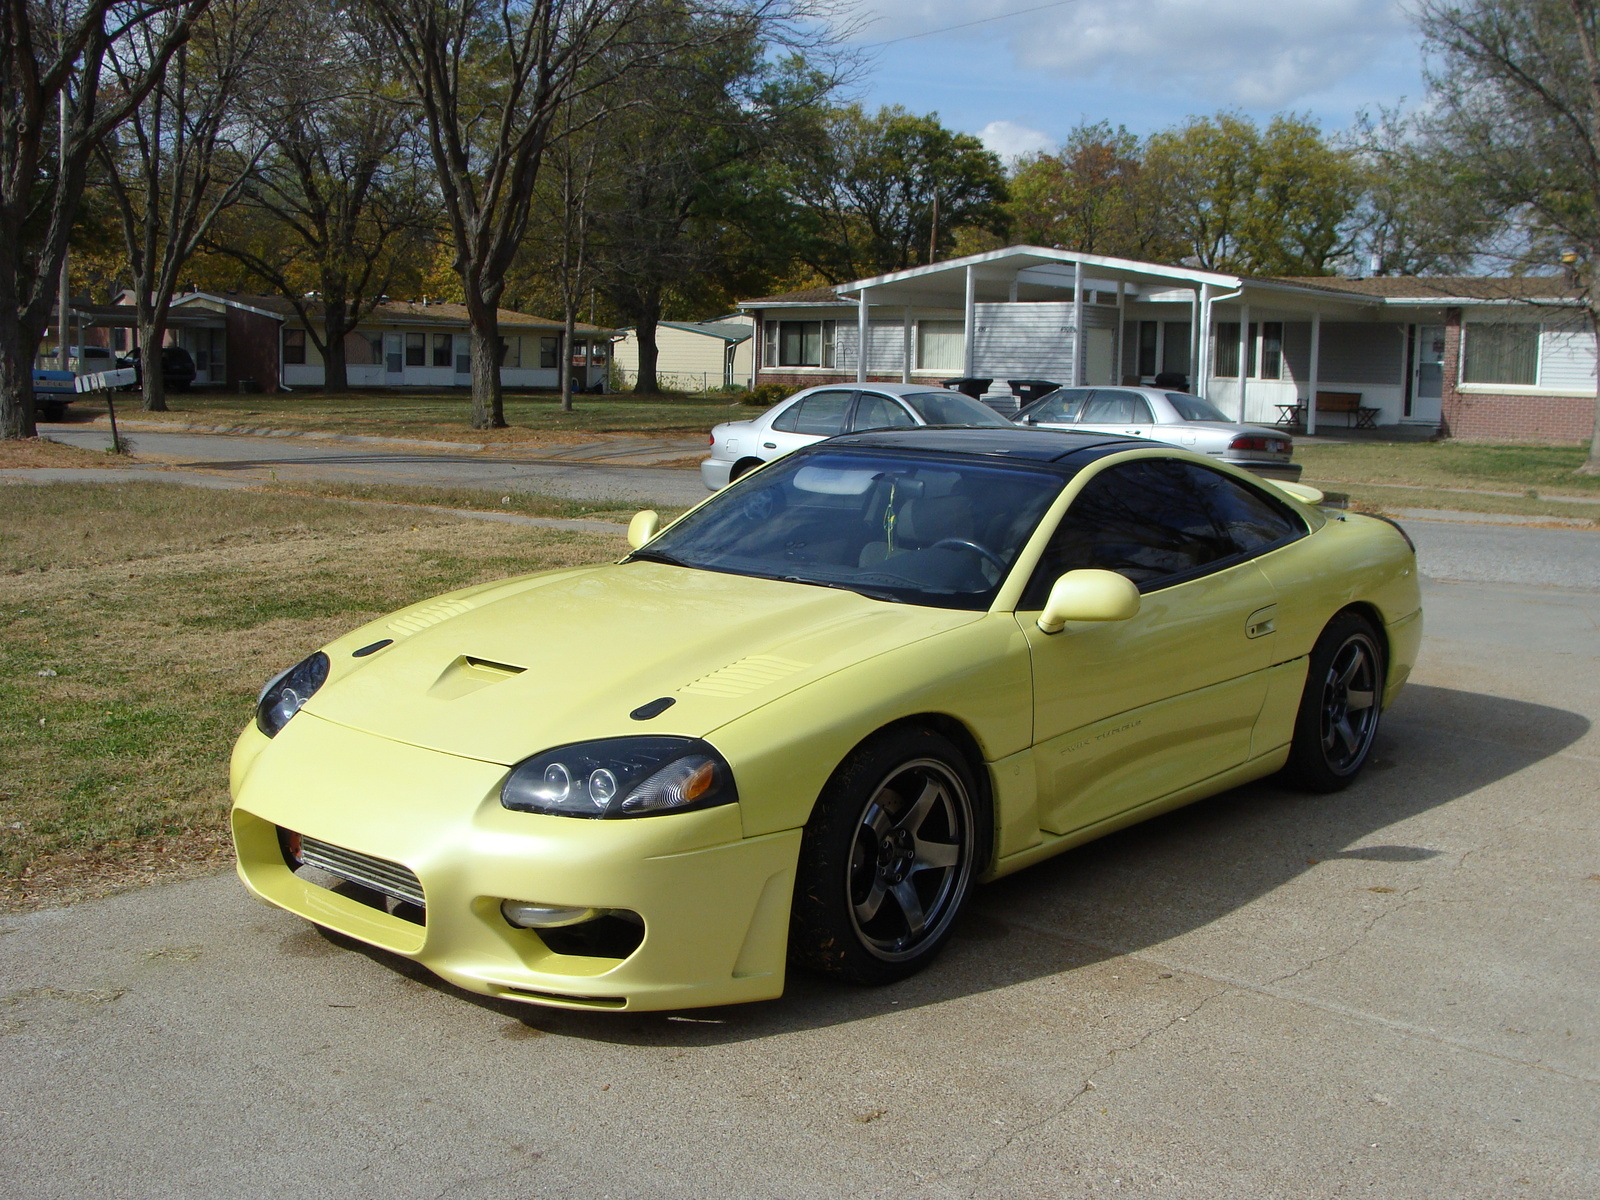 1994 Dodge Stealth 2 Dr R/T Turbo AWD Hatchback, 94 Stealth Twin turbo ...